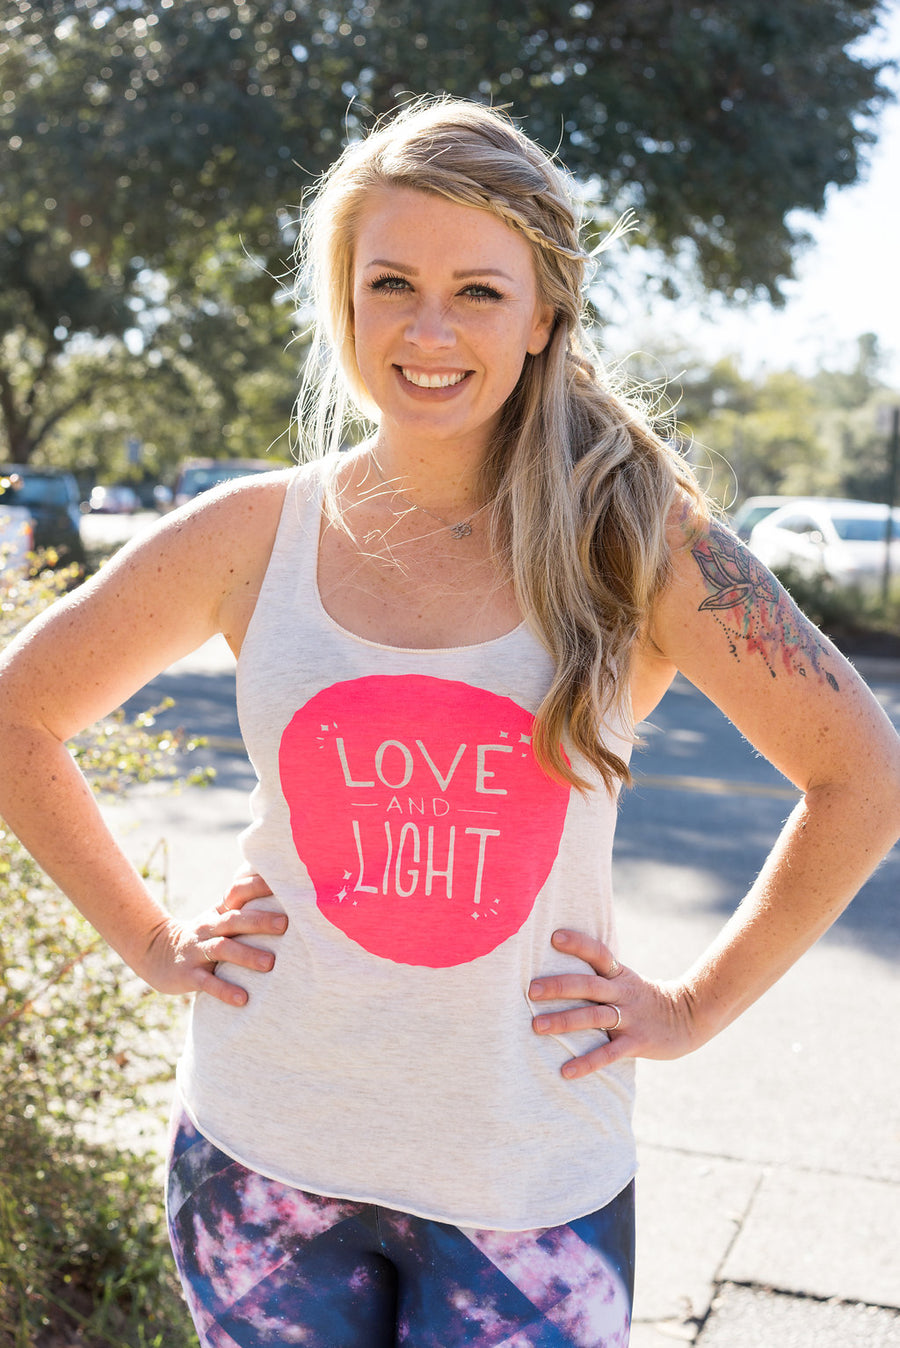 Love and Light Glow in the Dark Tank Top - Inspired by Stephanie Rose